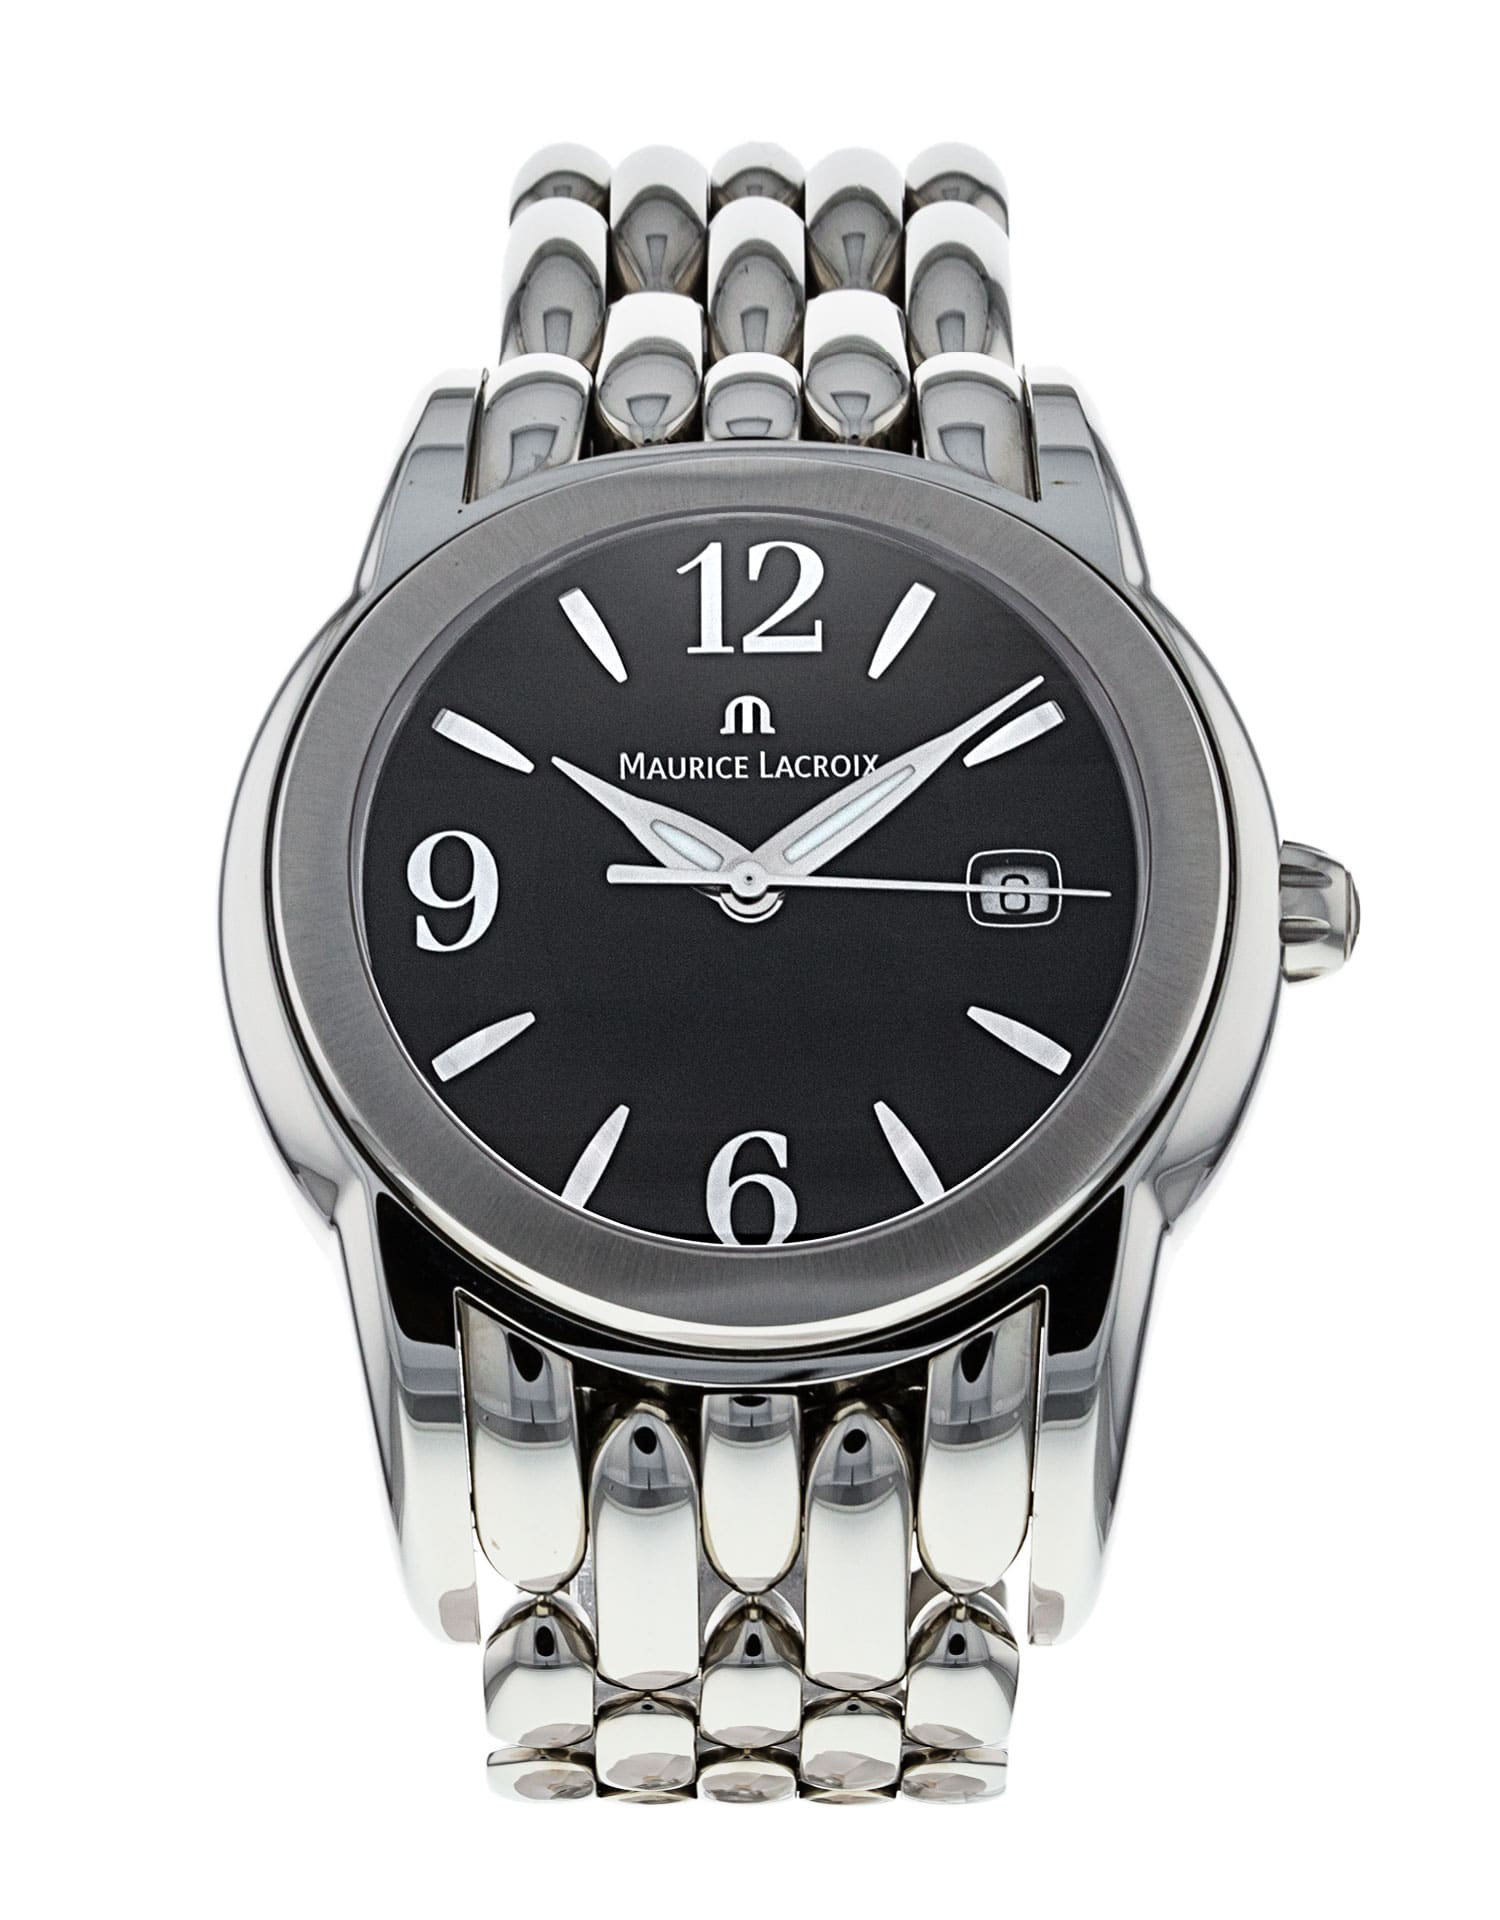 Maurice Lacroix Sphere SH1018-SS002-320 40 mm